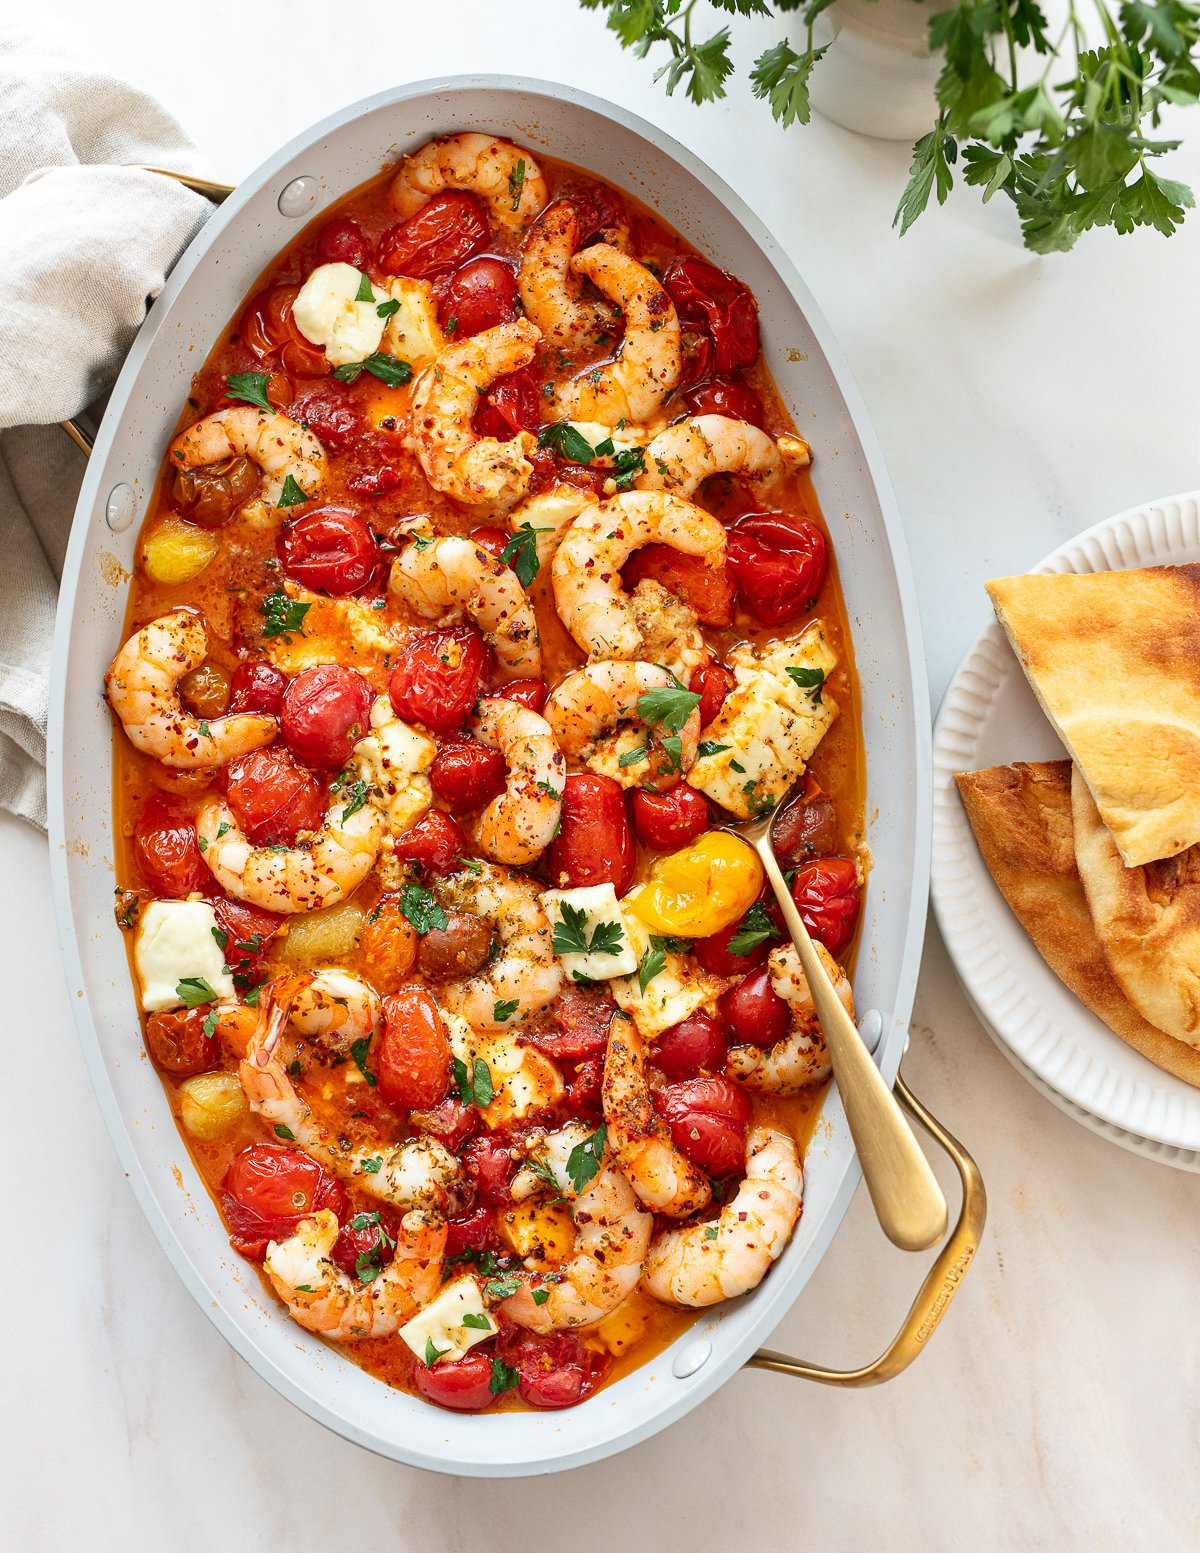 An oval baking pan filled with baked shrimp with feta cheese and cherry tomatoes, with a serving spoon and pita bread on the side.